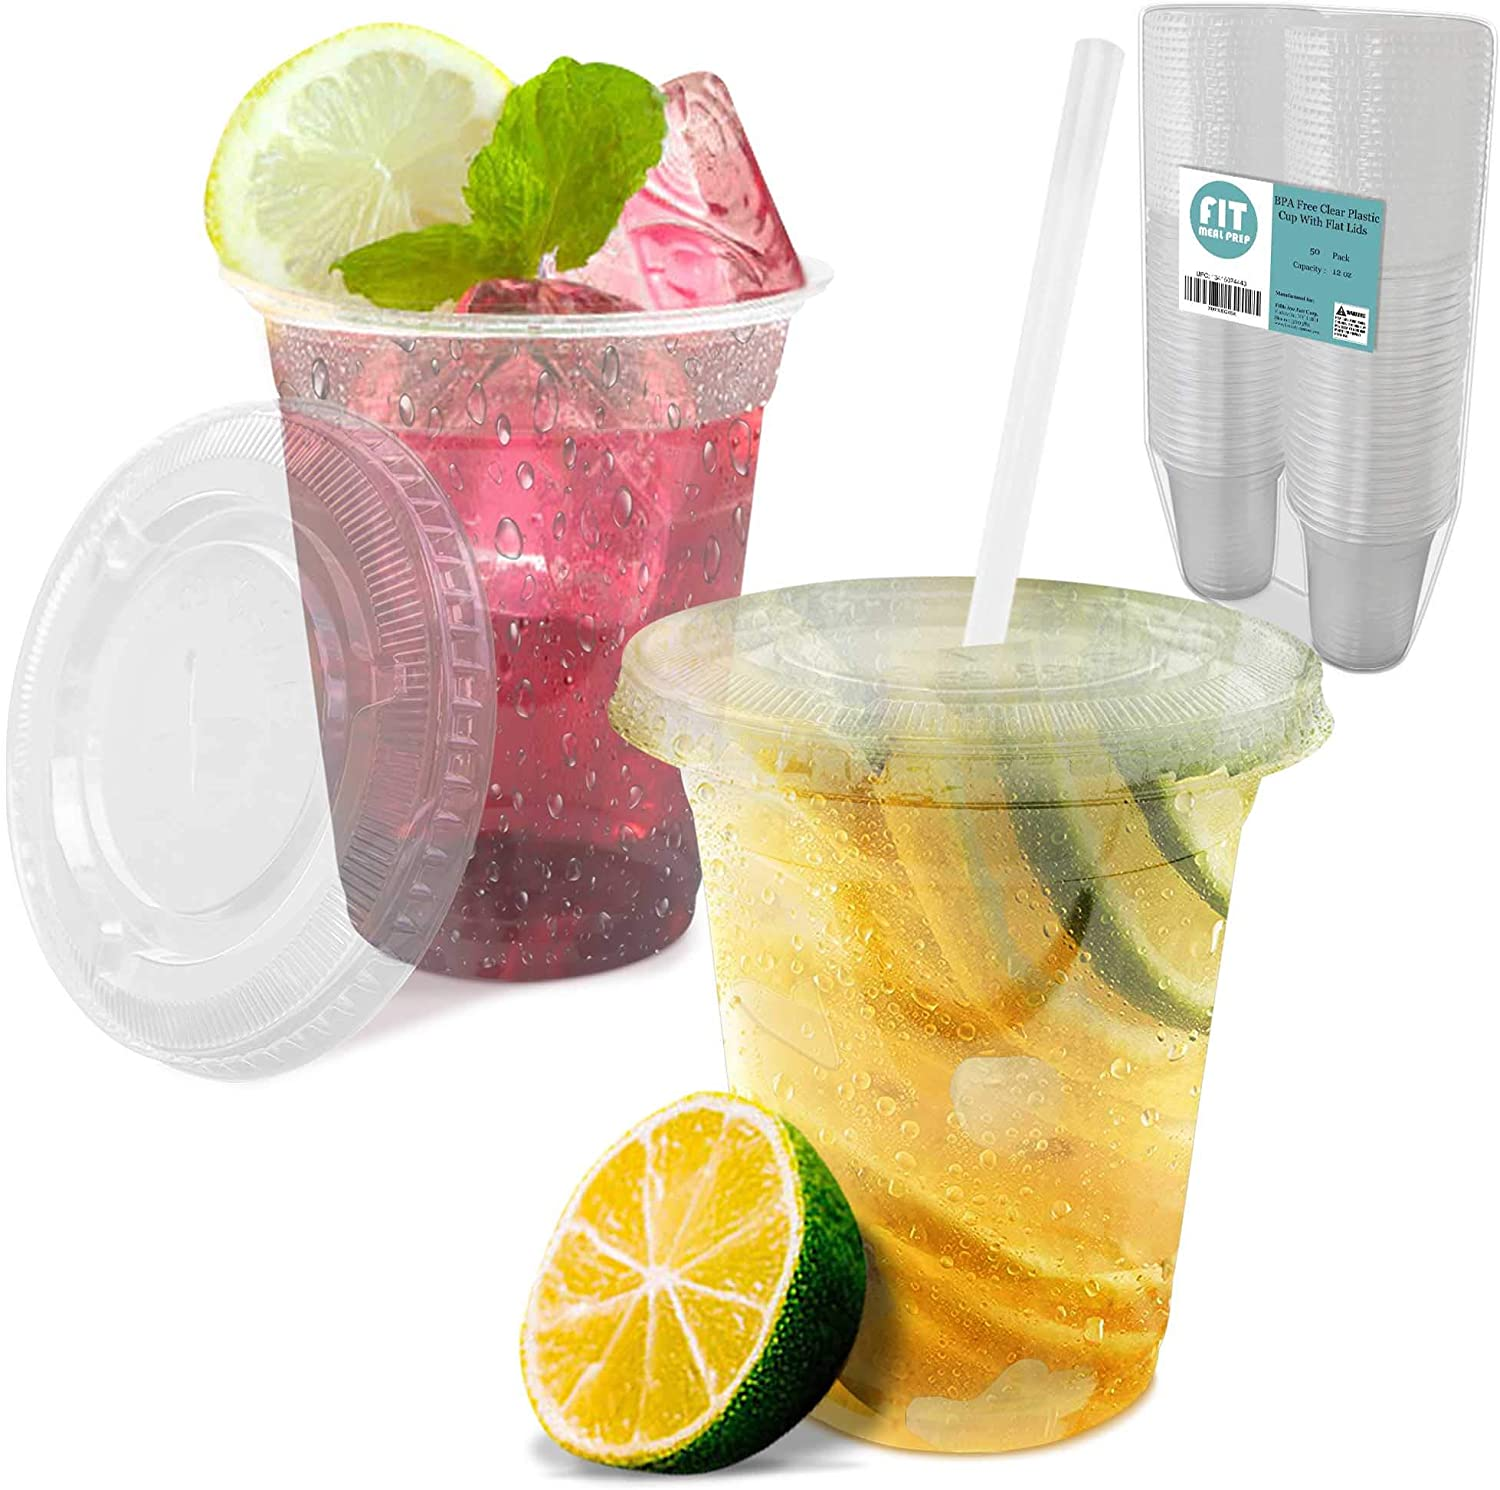 [50 Pack] 12 oz Clear Plastic Cup with Lid - BPA Free Take Out Container for Iced Cold Drink Coffee Tea Juice Smoothie Bubble Boba Frappuccino, Disposable and Crack Resistant